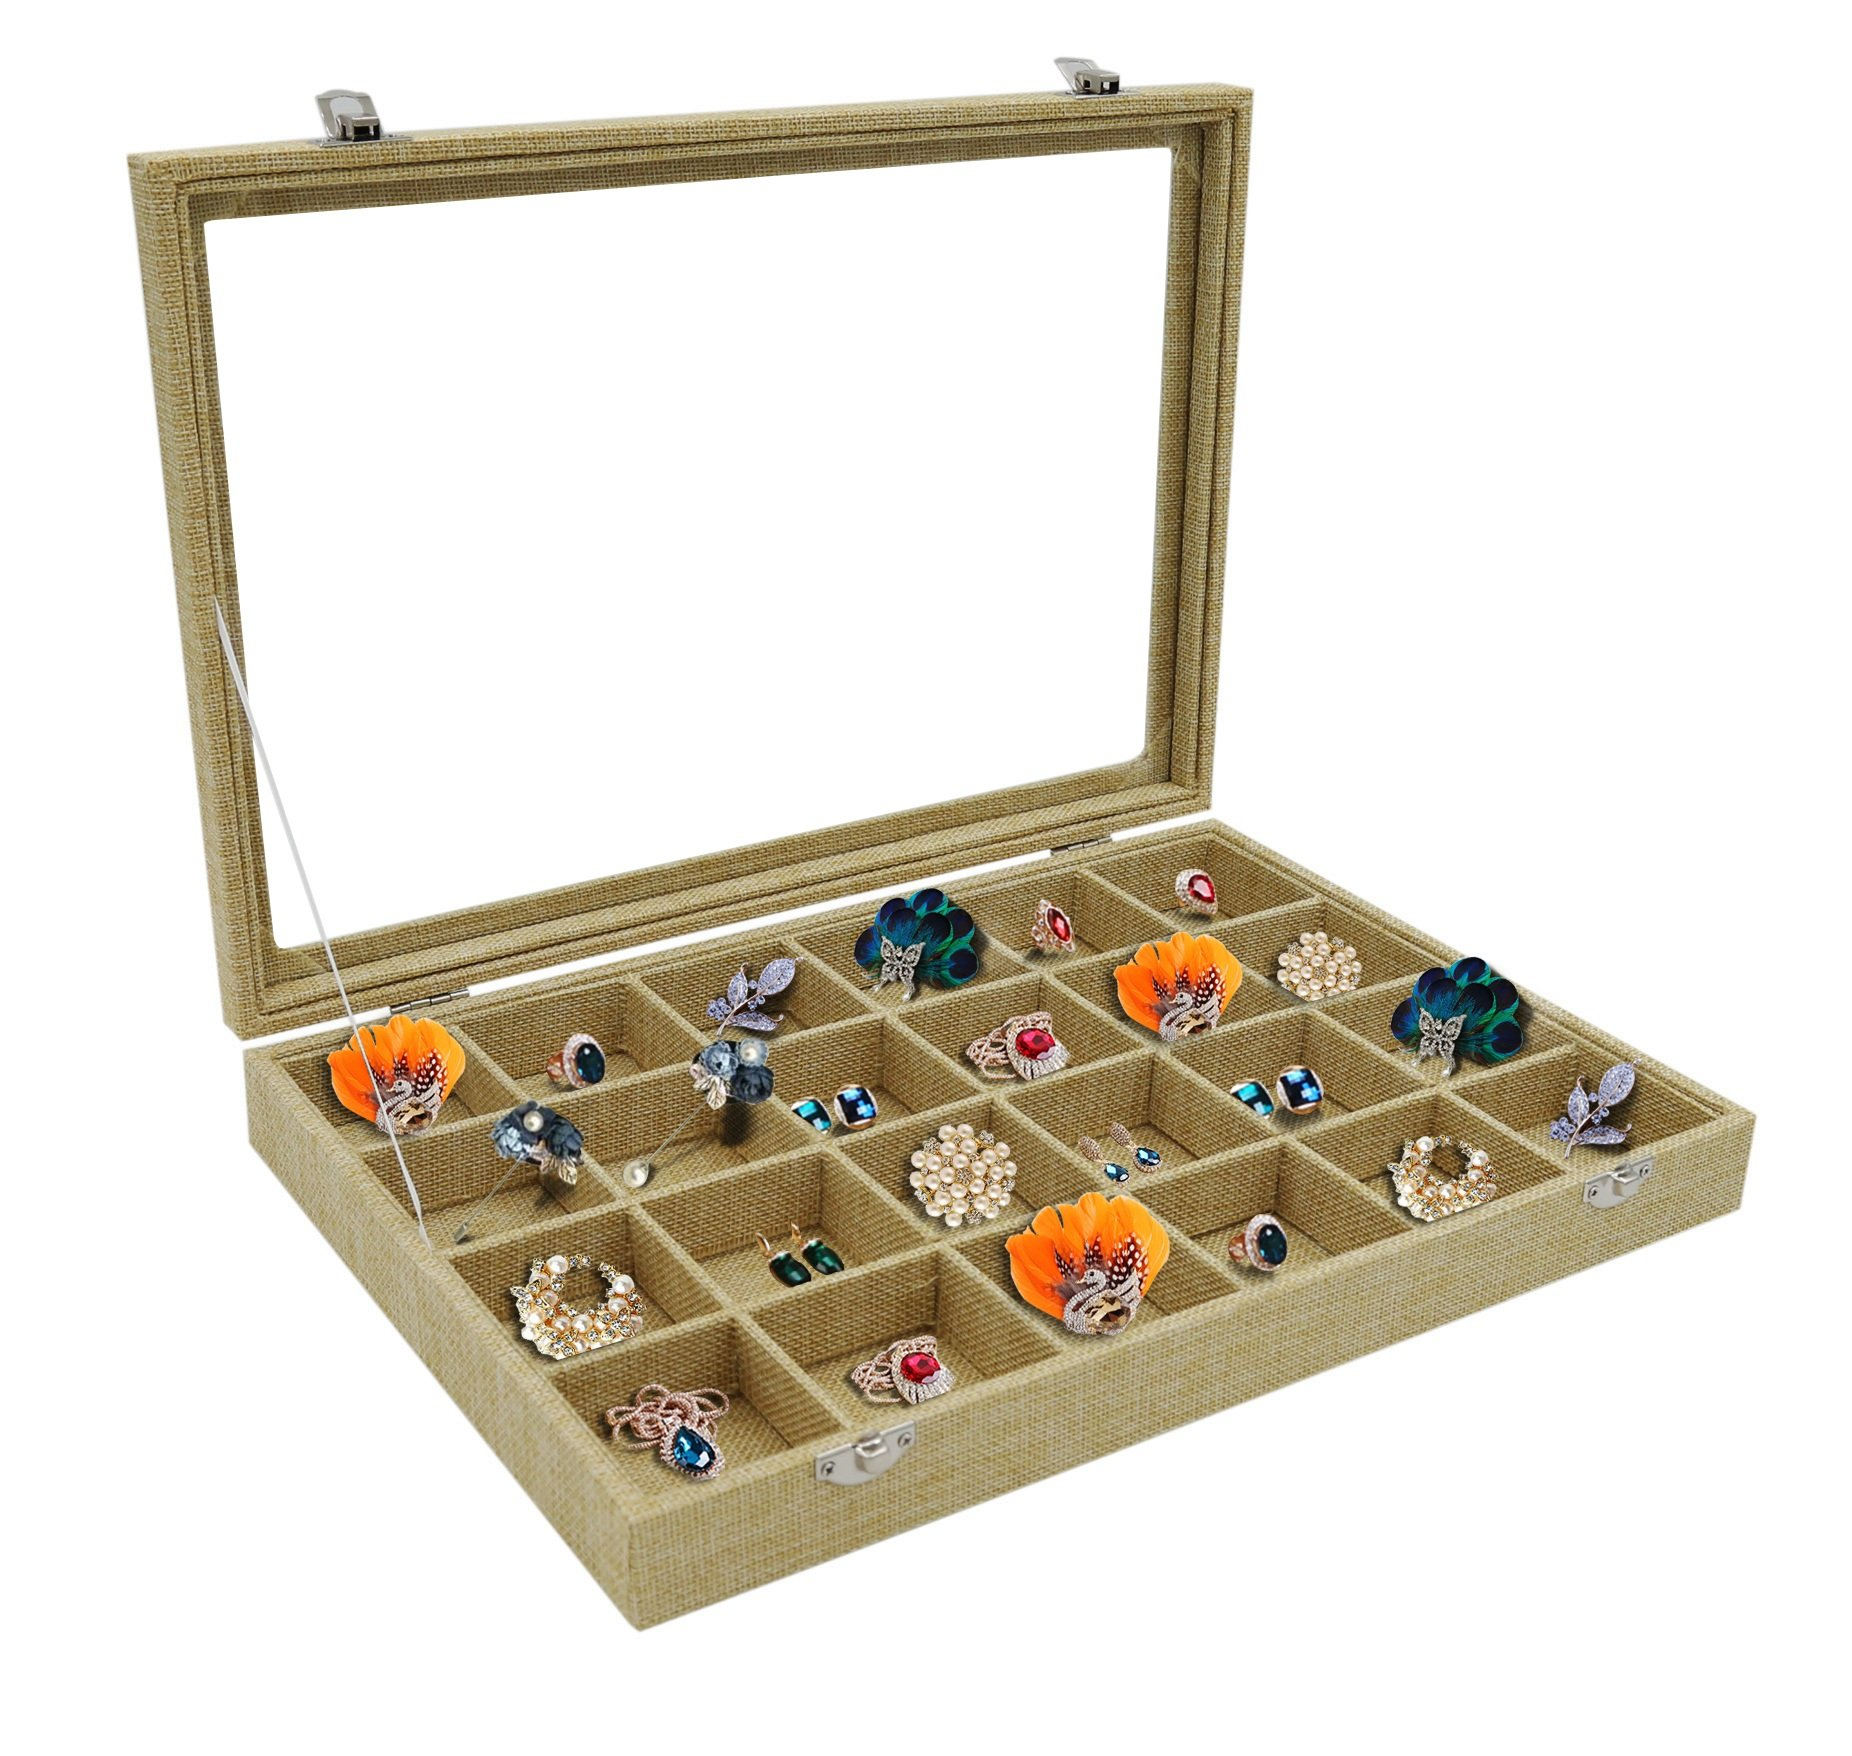 Wuligirl 24 Grid Linen Jewelry Tray Showcase Display Storage Rings Earrings Brooch Buttons Vintage Organizer Glass Top Lockable (24 Grid)